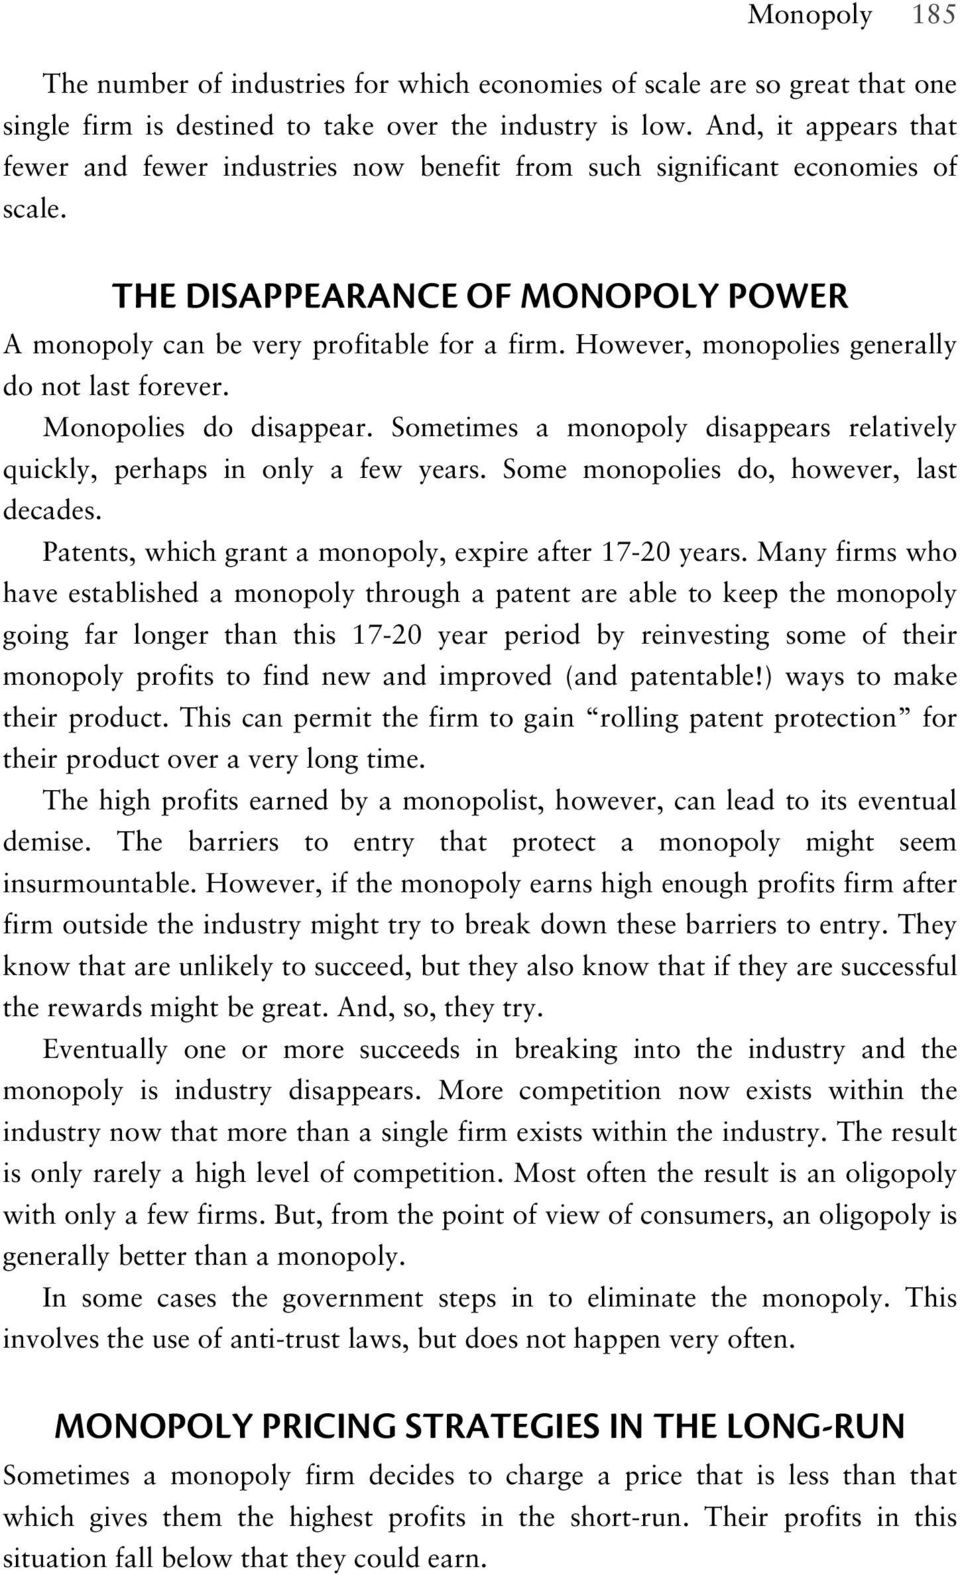 However, monopolies generally do not last forever. Monopolies do disappear. Sometimes a monopoly disappears relatively quickly, perhaps in only a few years. Some monopolies do, however, last decades.